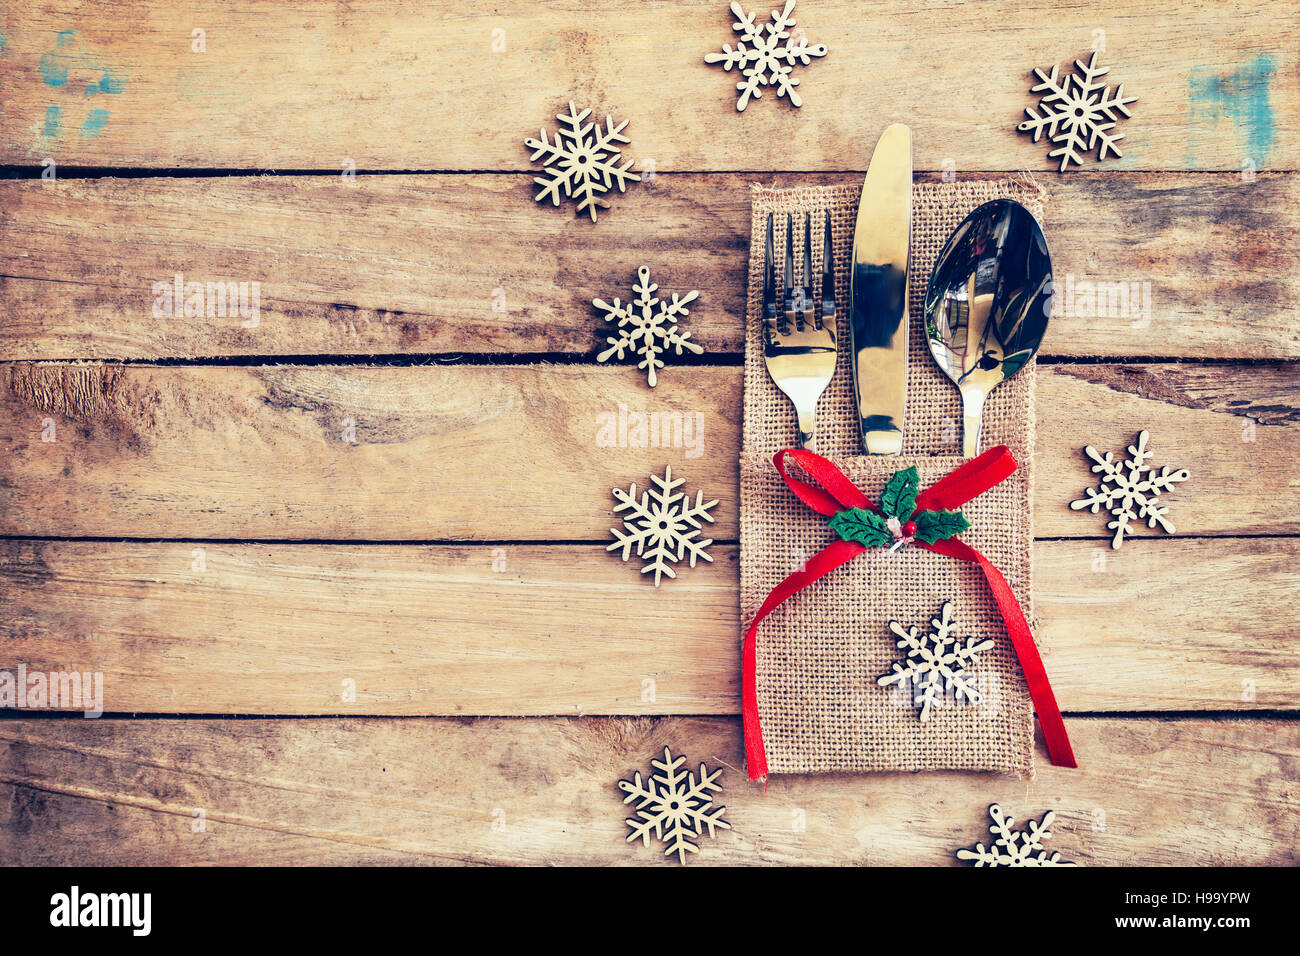 christmas table place setting and silverware snowflakes on table wooden background with space for christmas.  sc 1 st  Alamy & christmas table place setting and silverware snowflakes on table ...